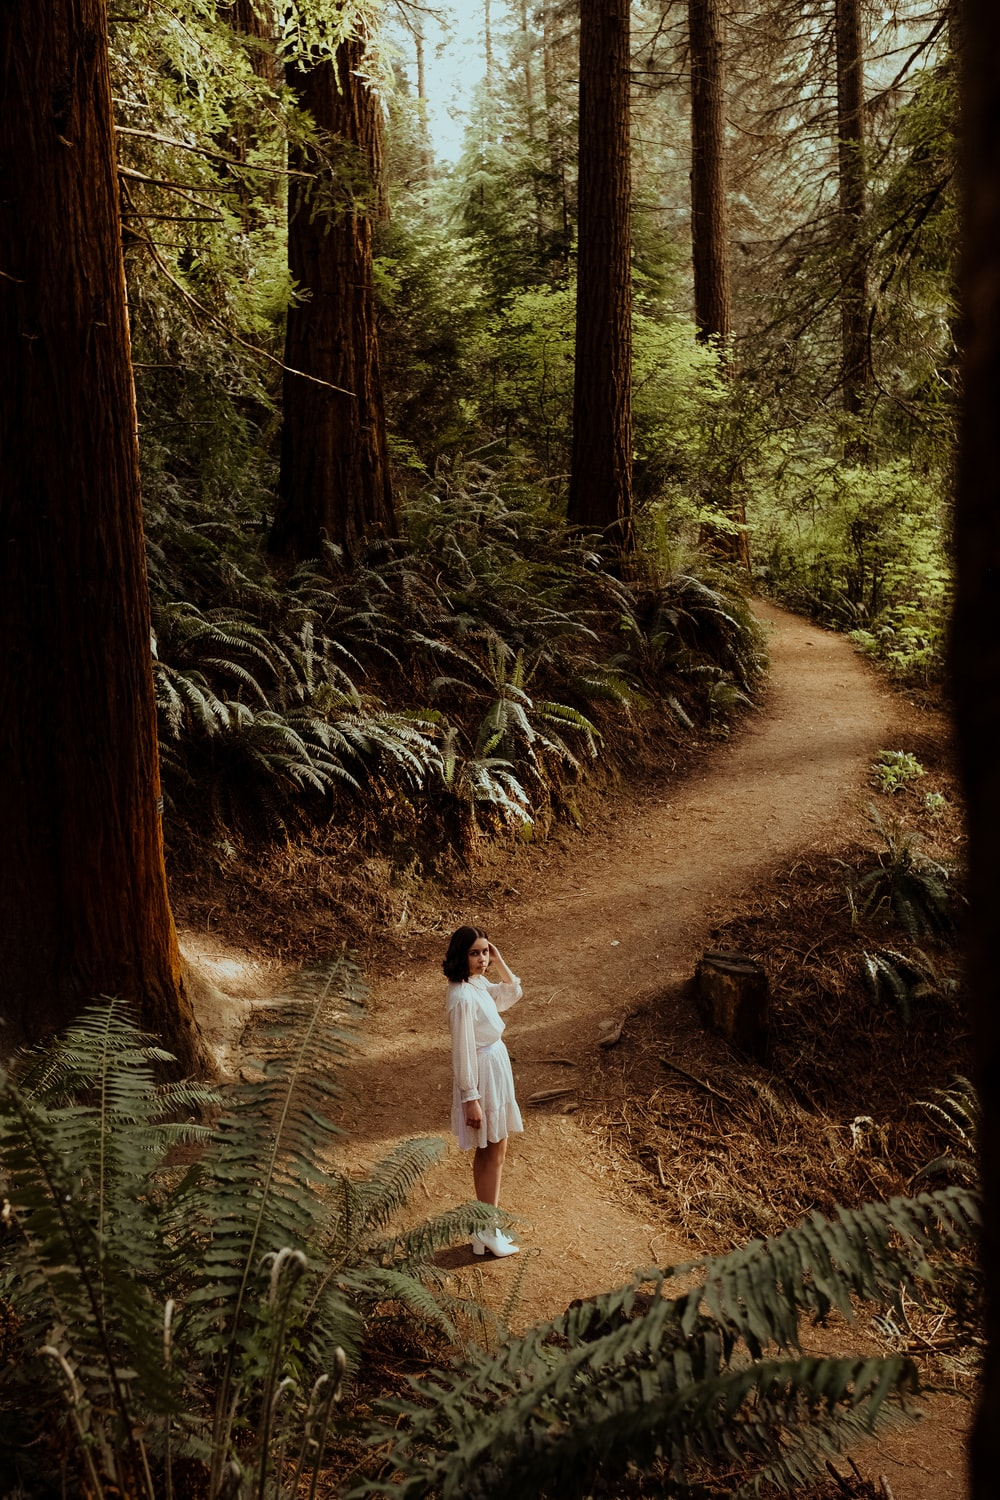 girl in white shirt walking on dirt road between green plants and trees during daytime